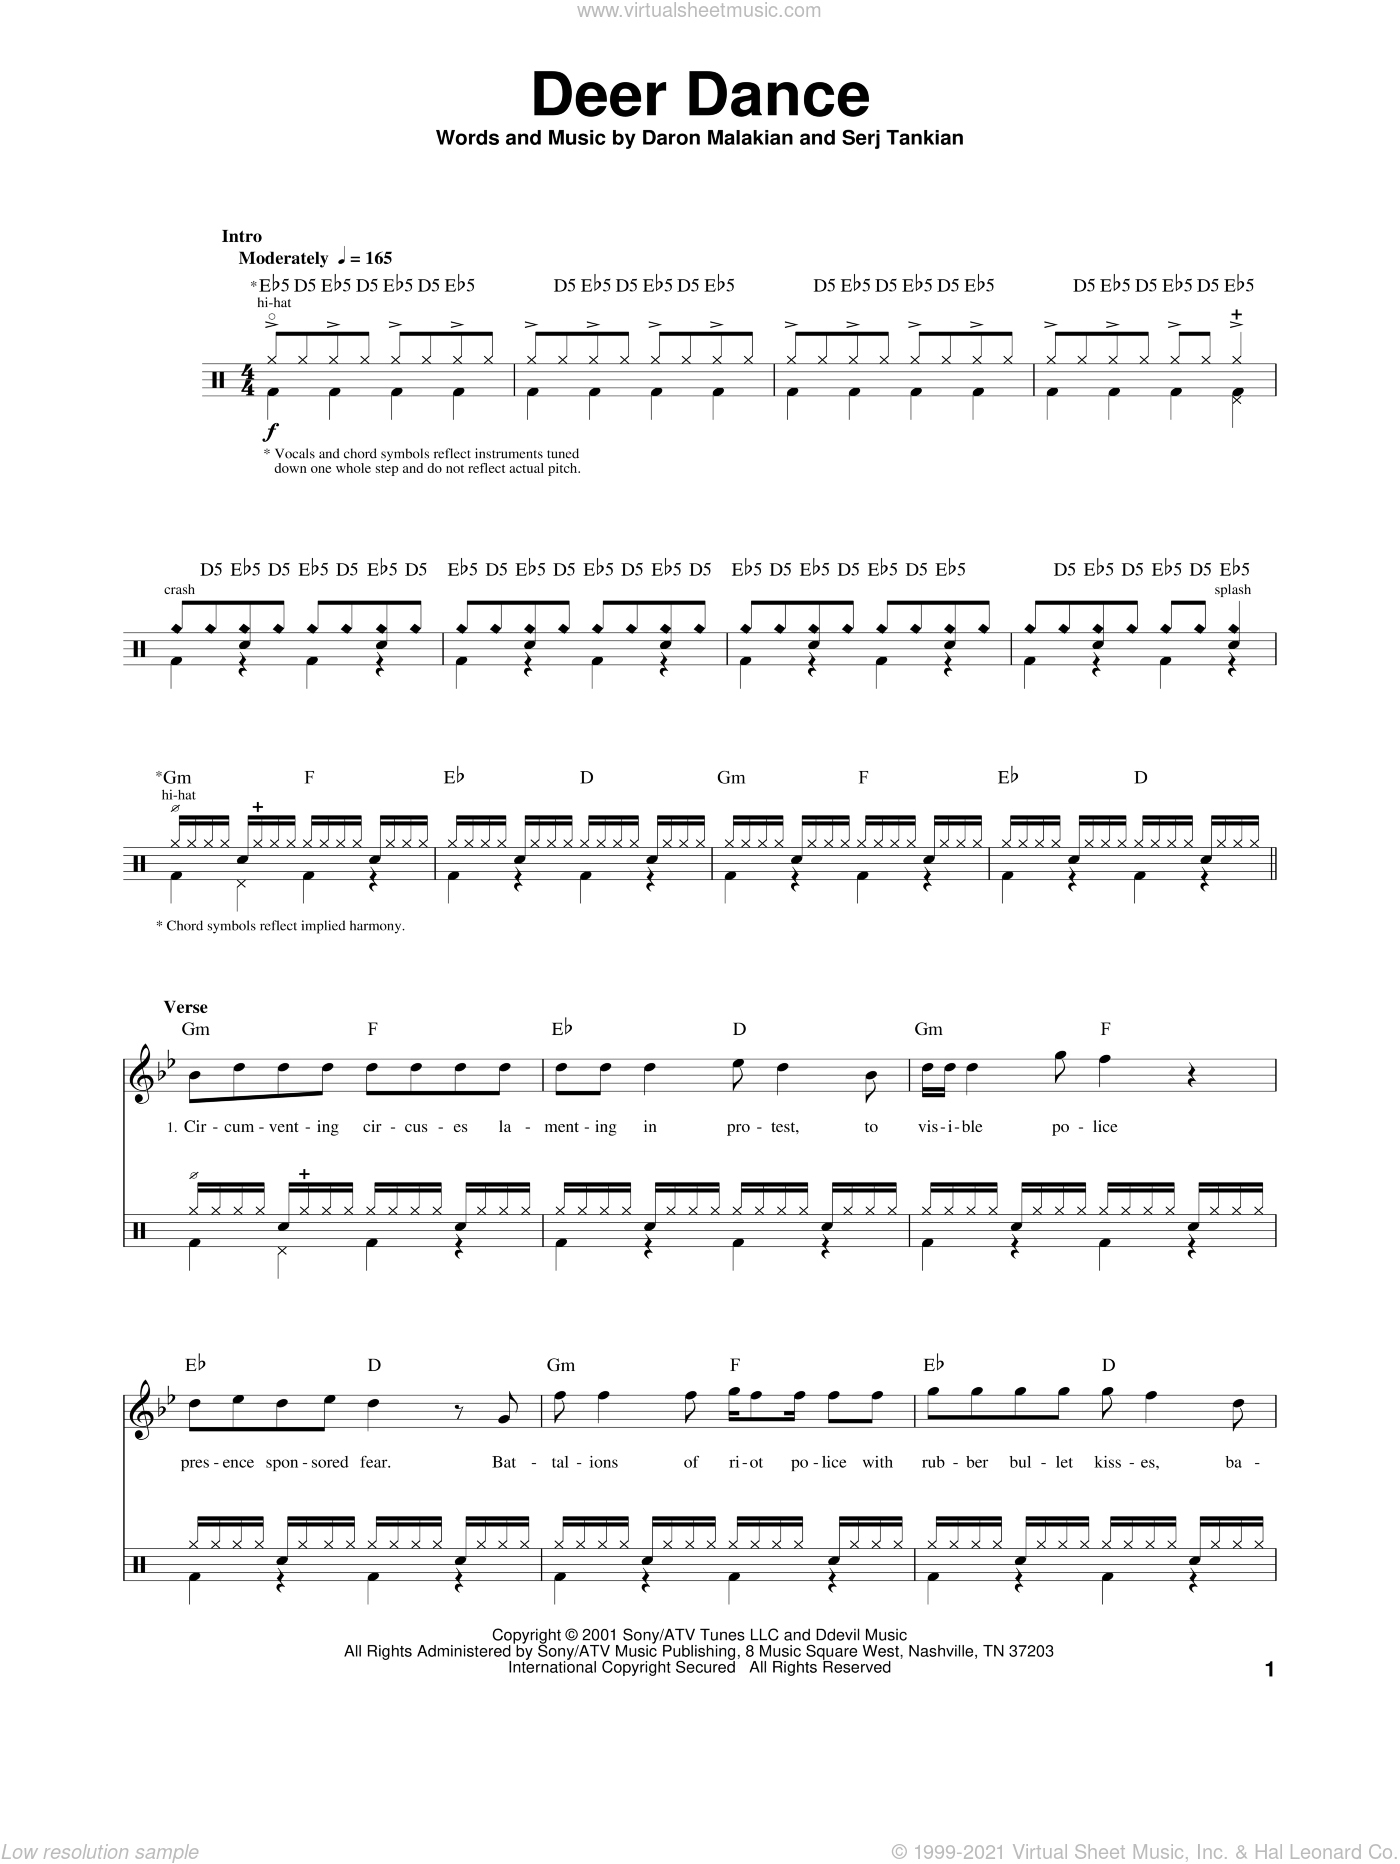 Deer Dance sheet music for drums by System Of A Down, Daron Malakian and Serj Tankian, intermediate skill level